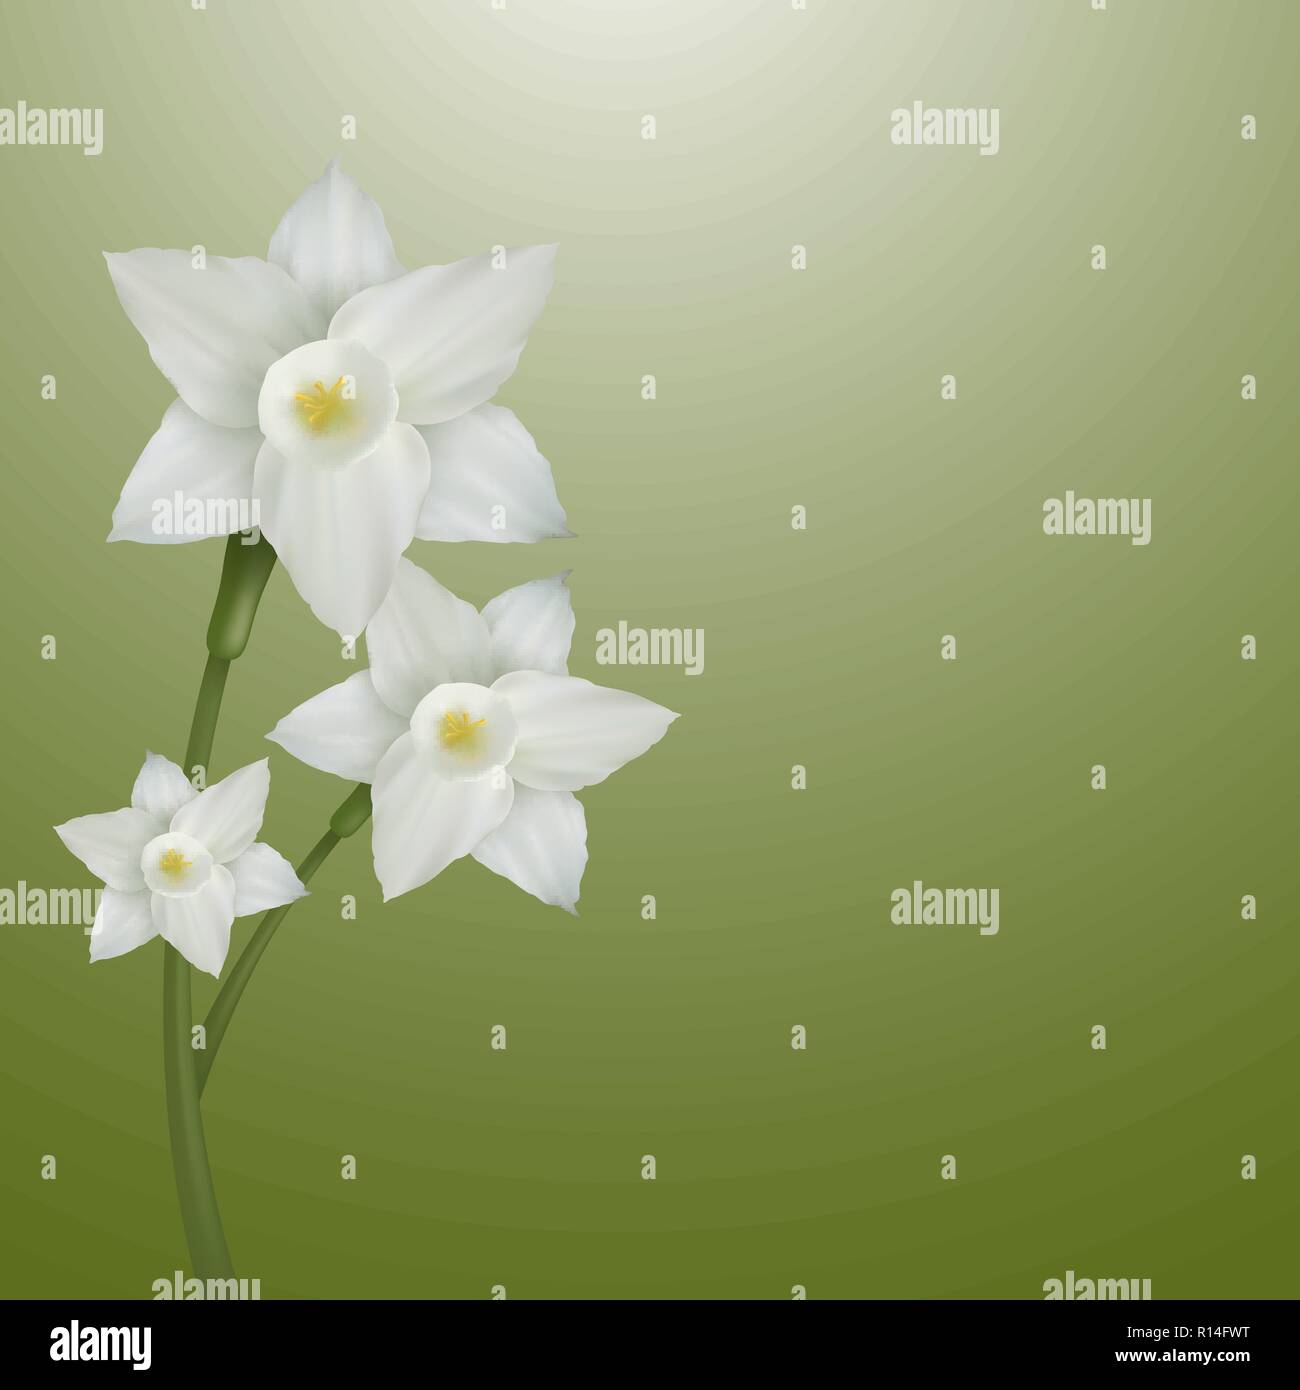 Flower of narcissus on a gentle-green background. vector illustration. - Stock Vector